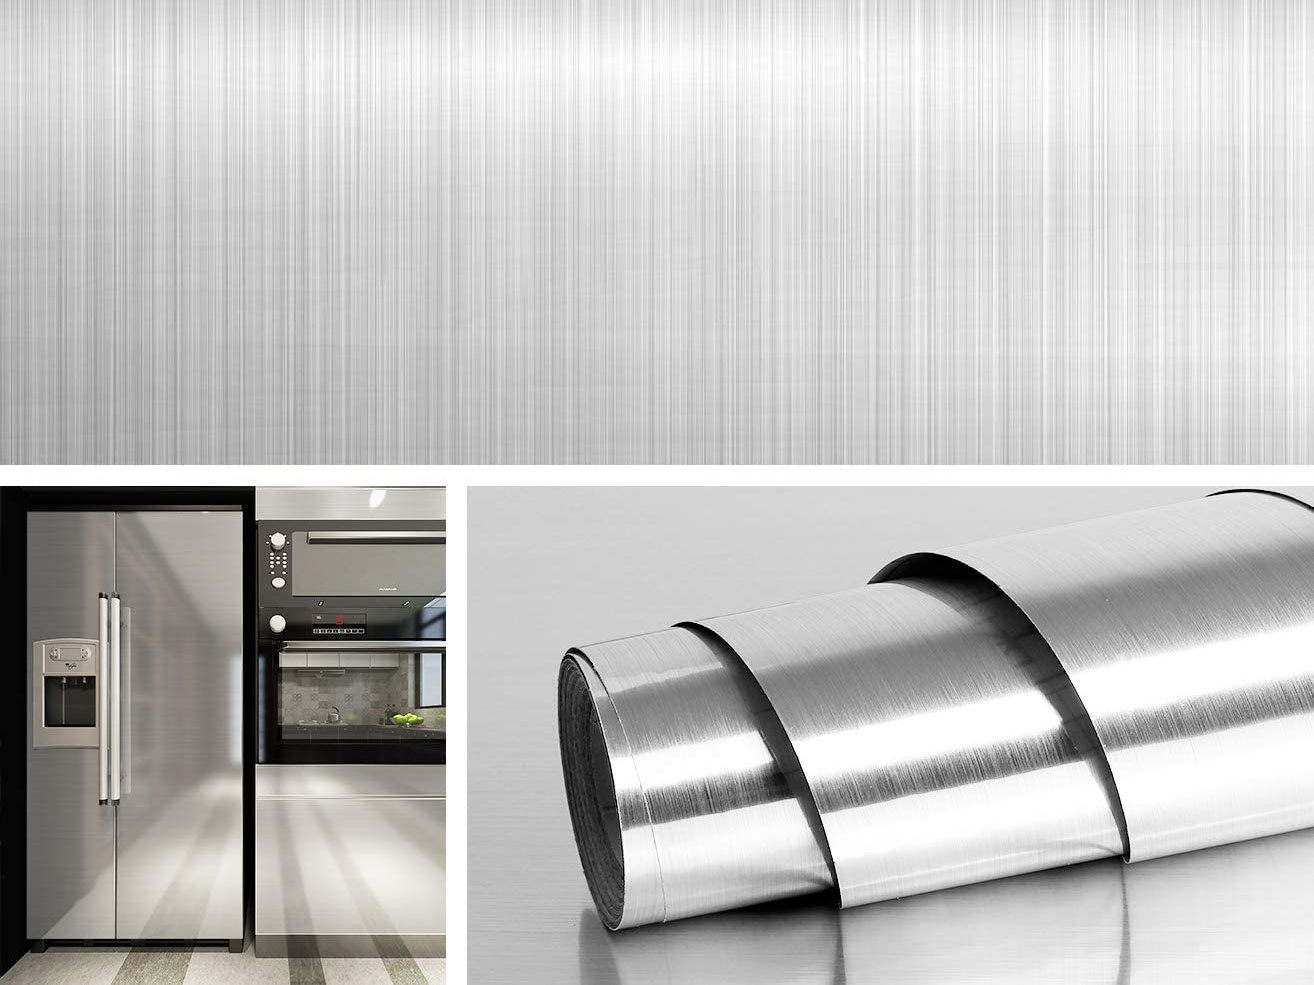 Peel-and-Stick Stainless Steel Wallpaper